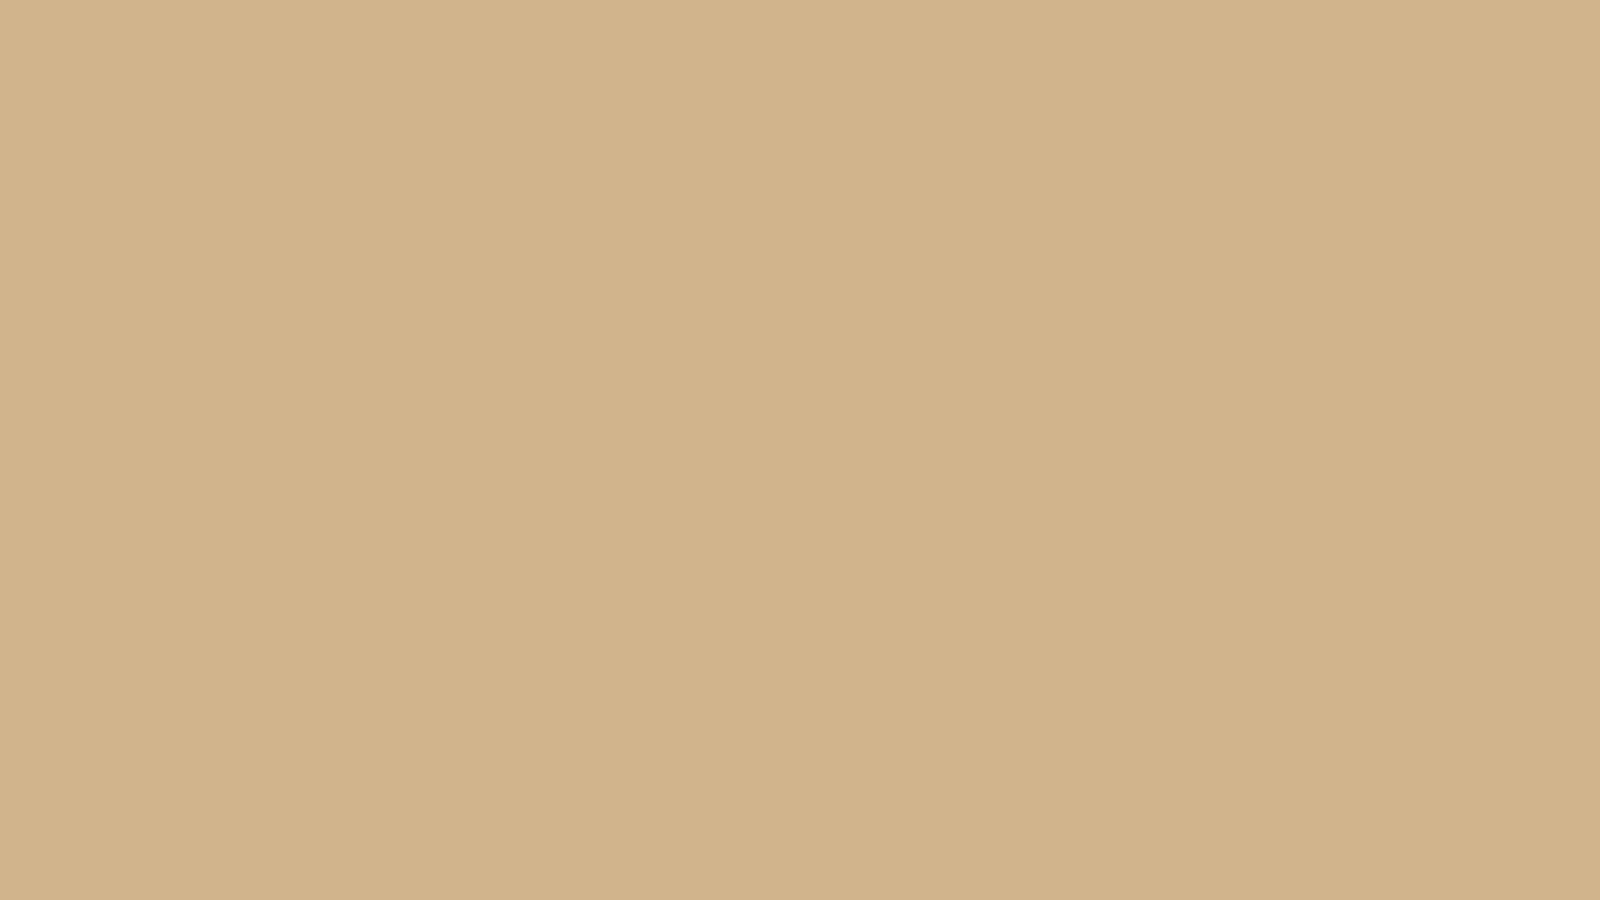 1600x900 tan solid color background